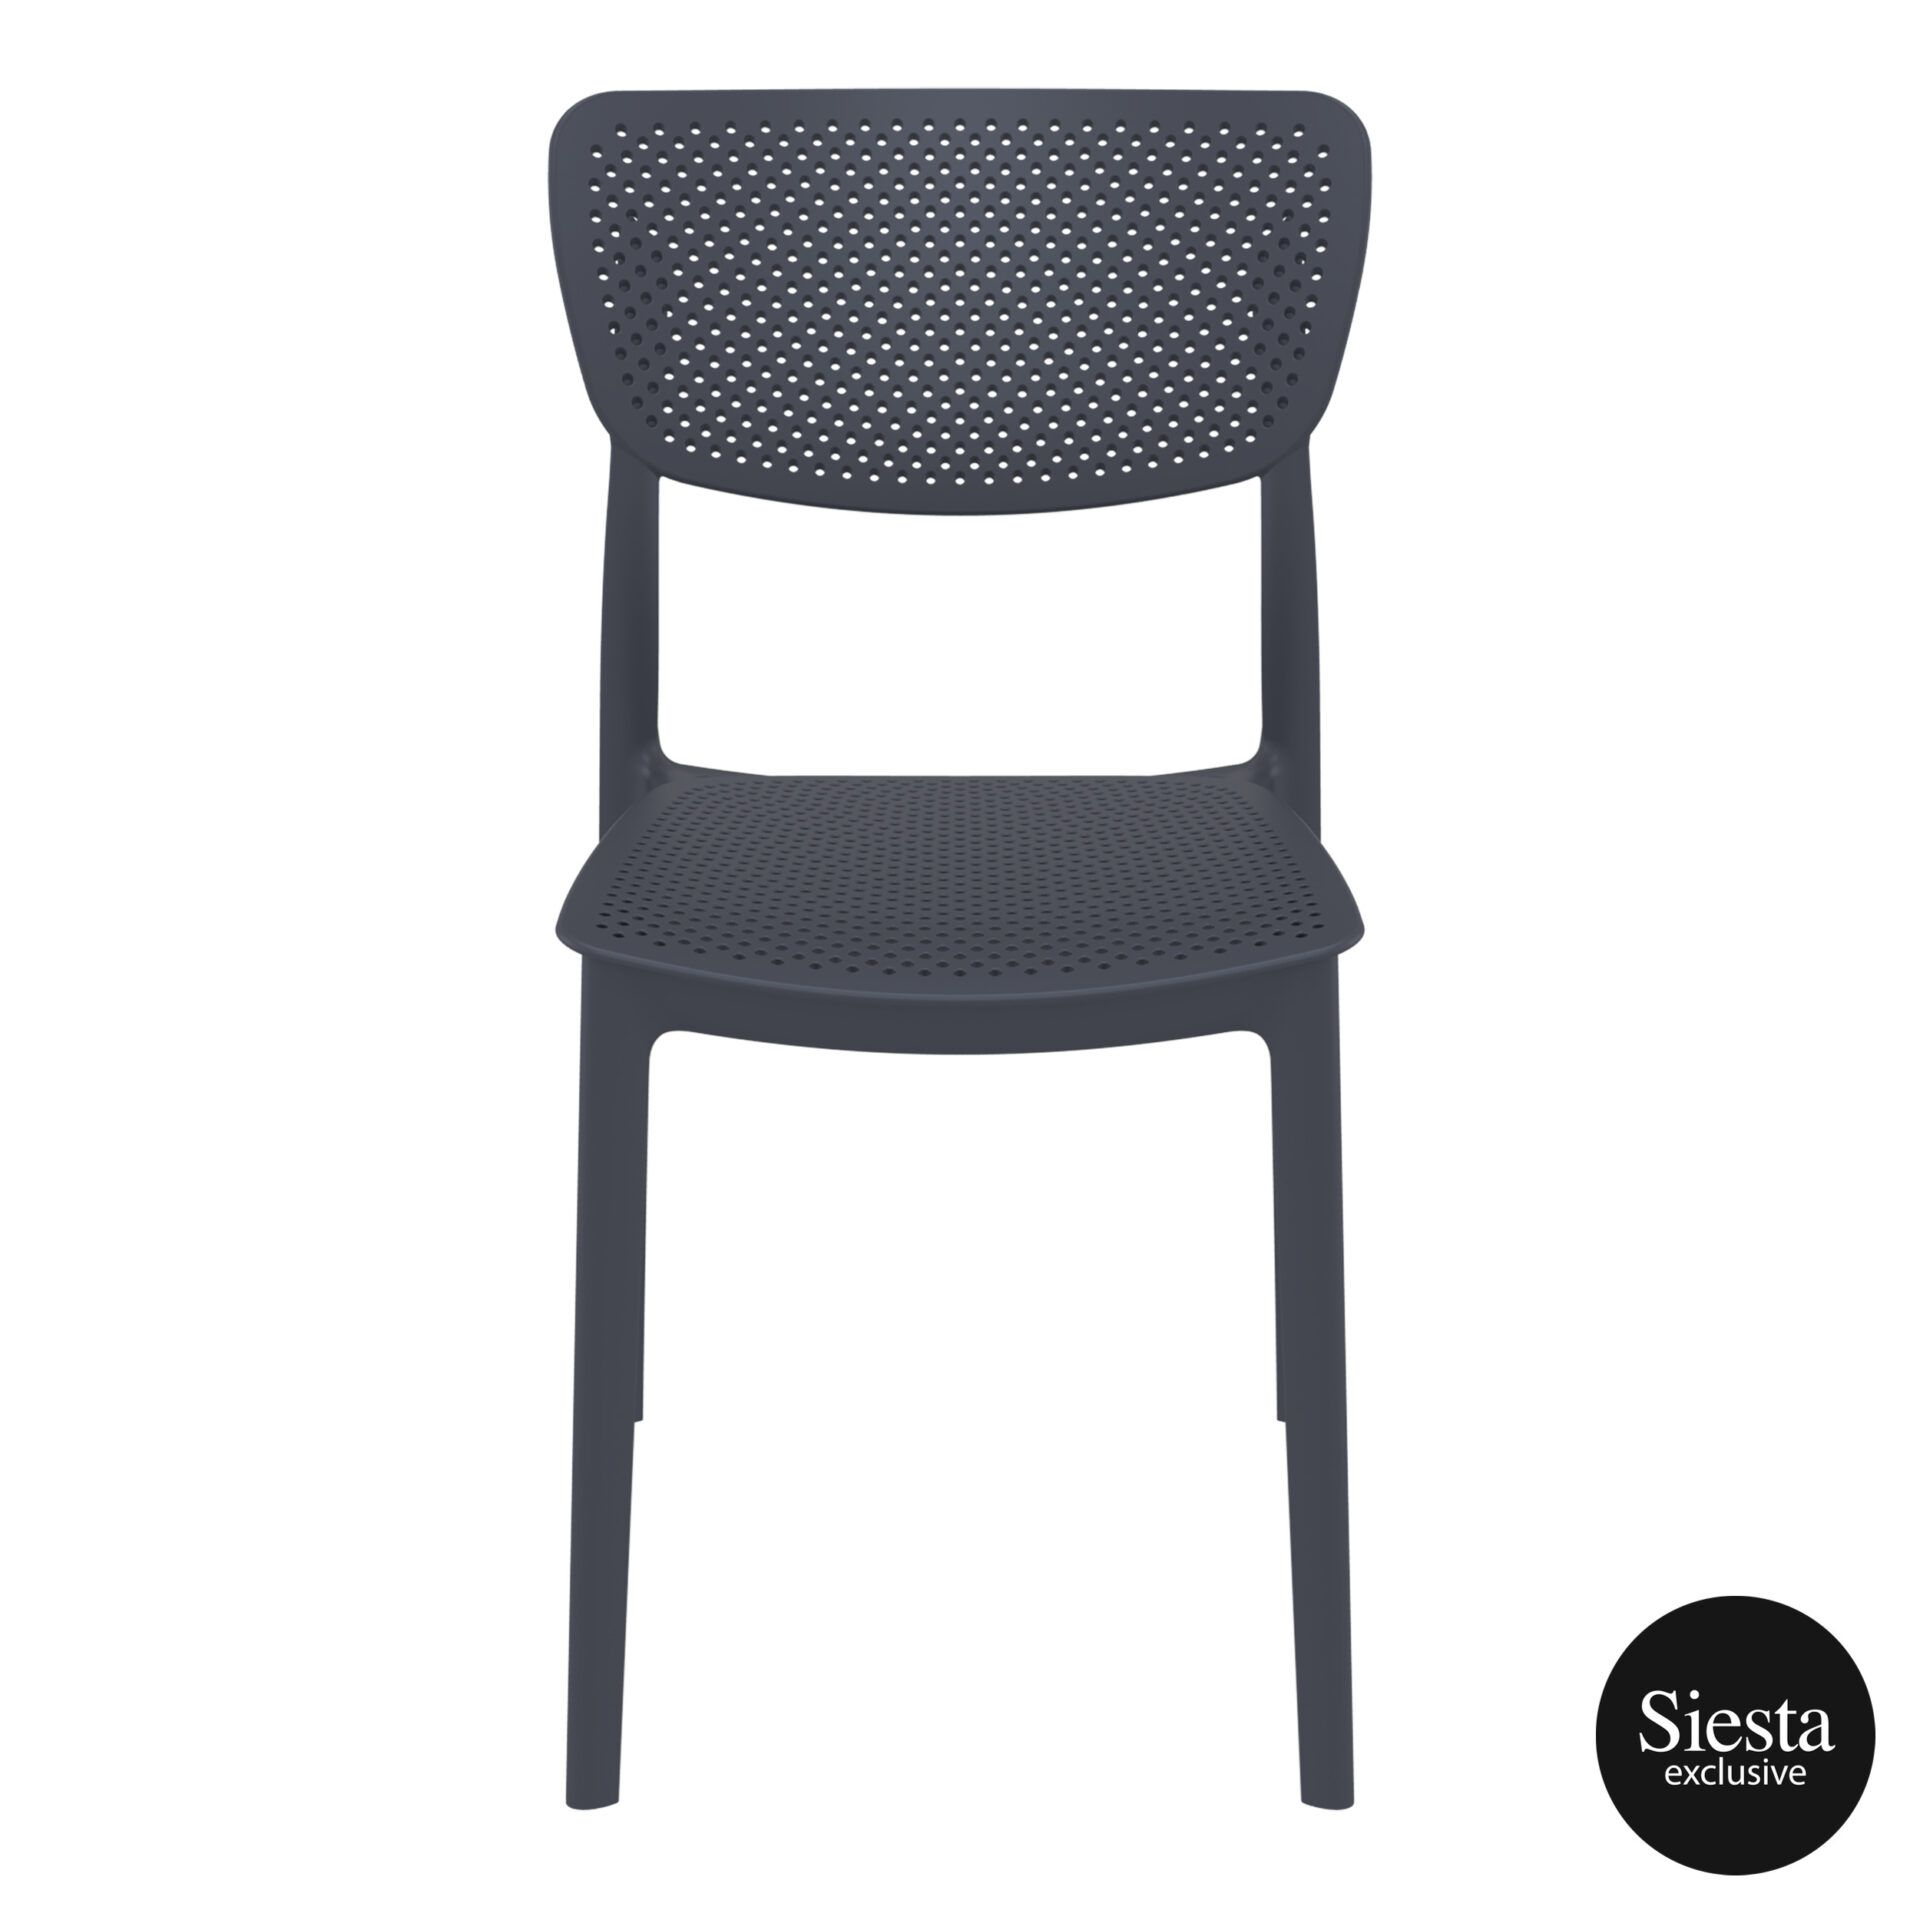 polypropylene hospitality seating lucy chair darkgrey front 2